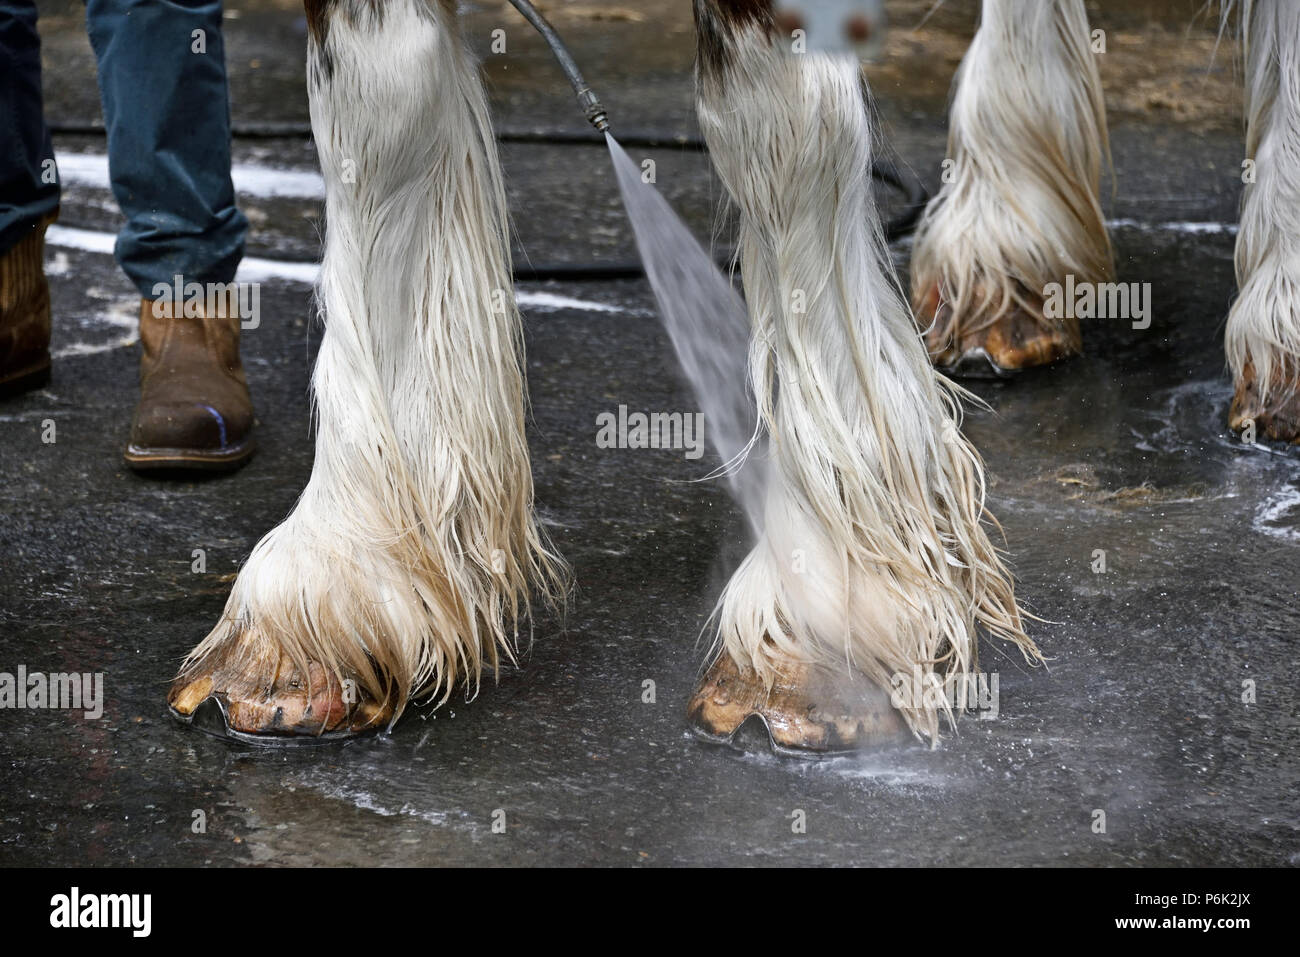 Washing hooves of Clydesdale horse. Royal Highland Show 2018, Ingliston, Edinburgh, Scotland, United Kingdom, Europe. - Stock Image